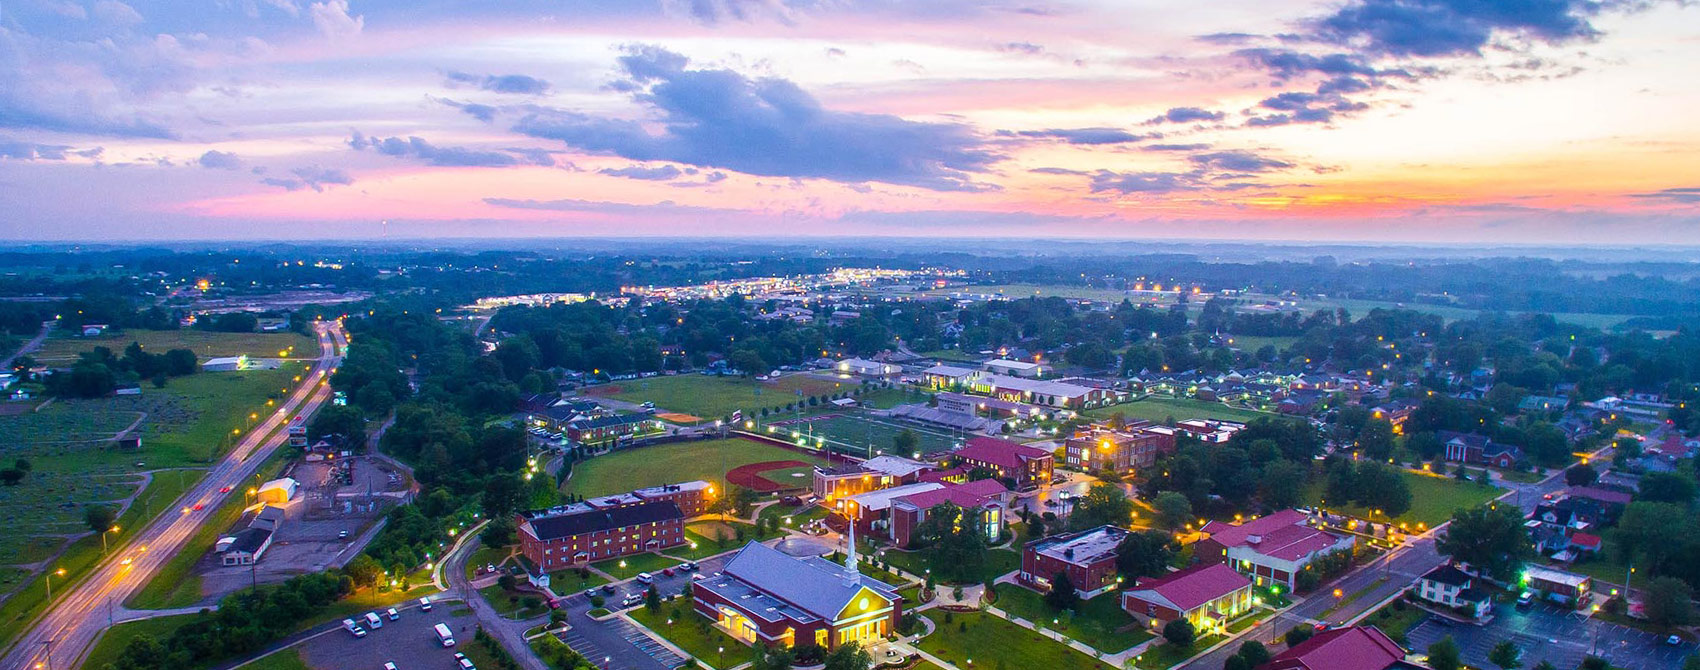 Admissions Campbellsville University Online